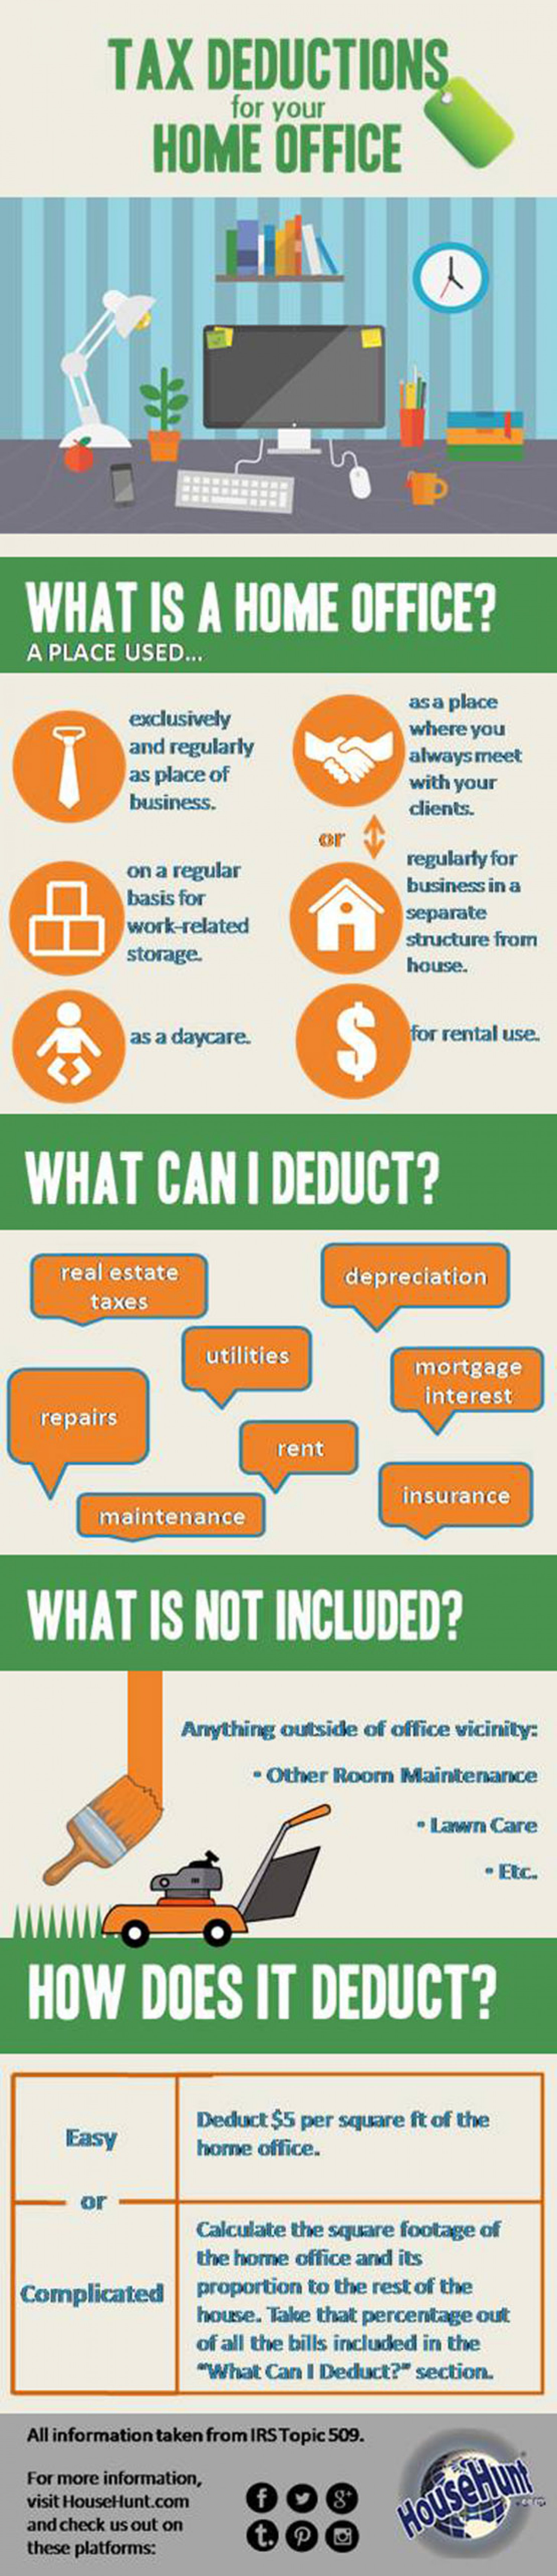 Home Office Business Deduction - Tax deductions for your home office infographic